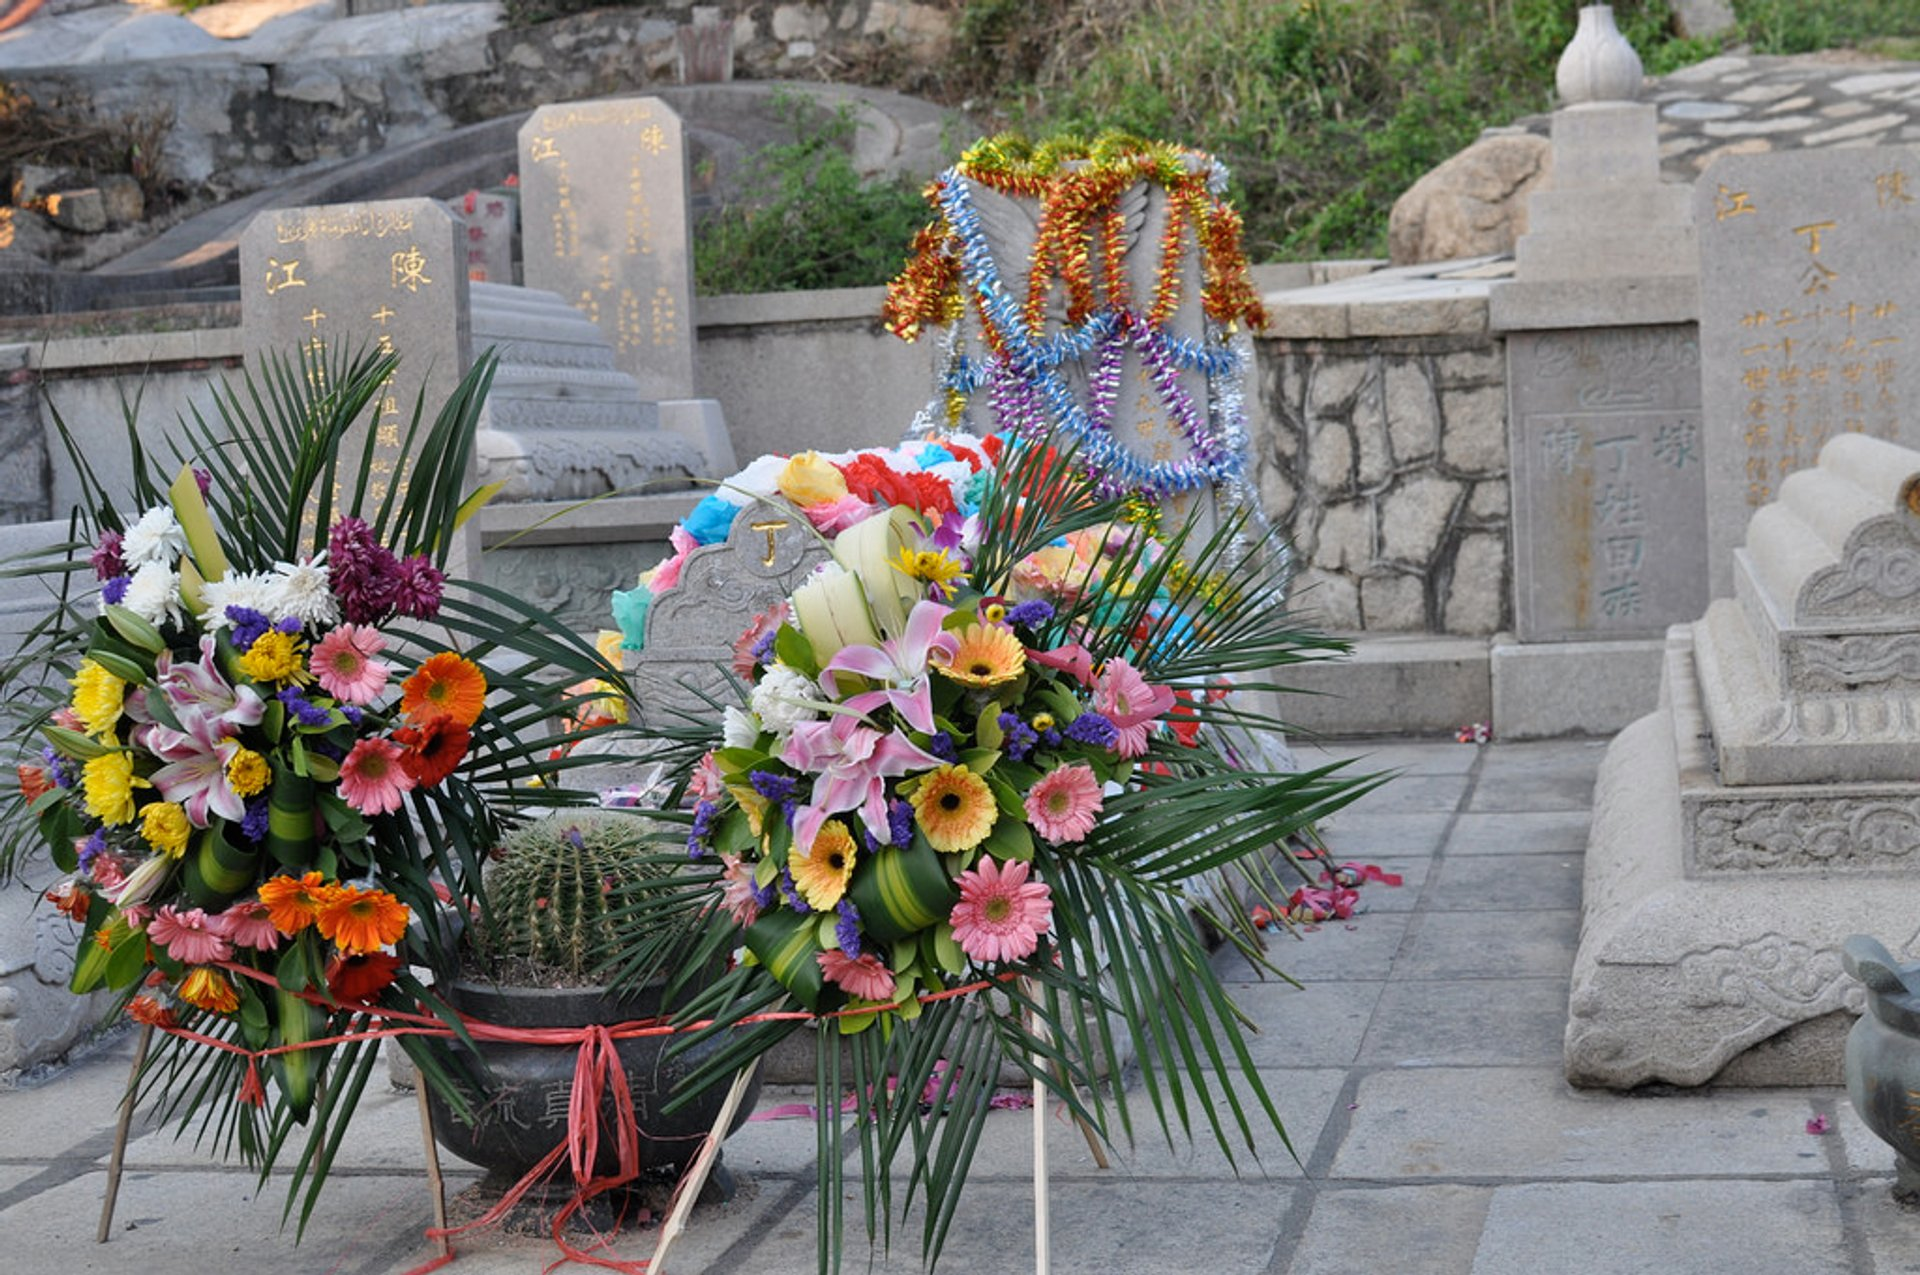 Qingming Festival in China - Best Season